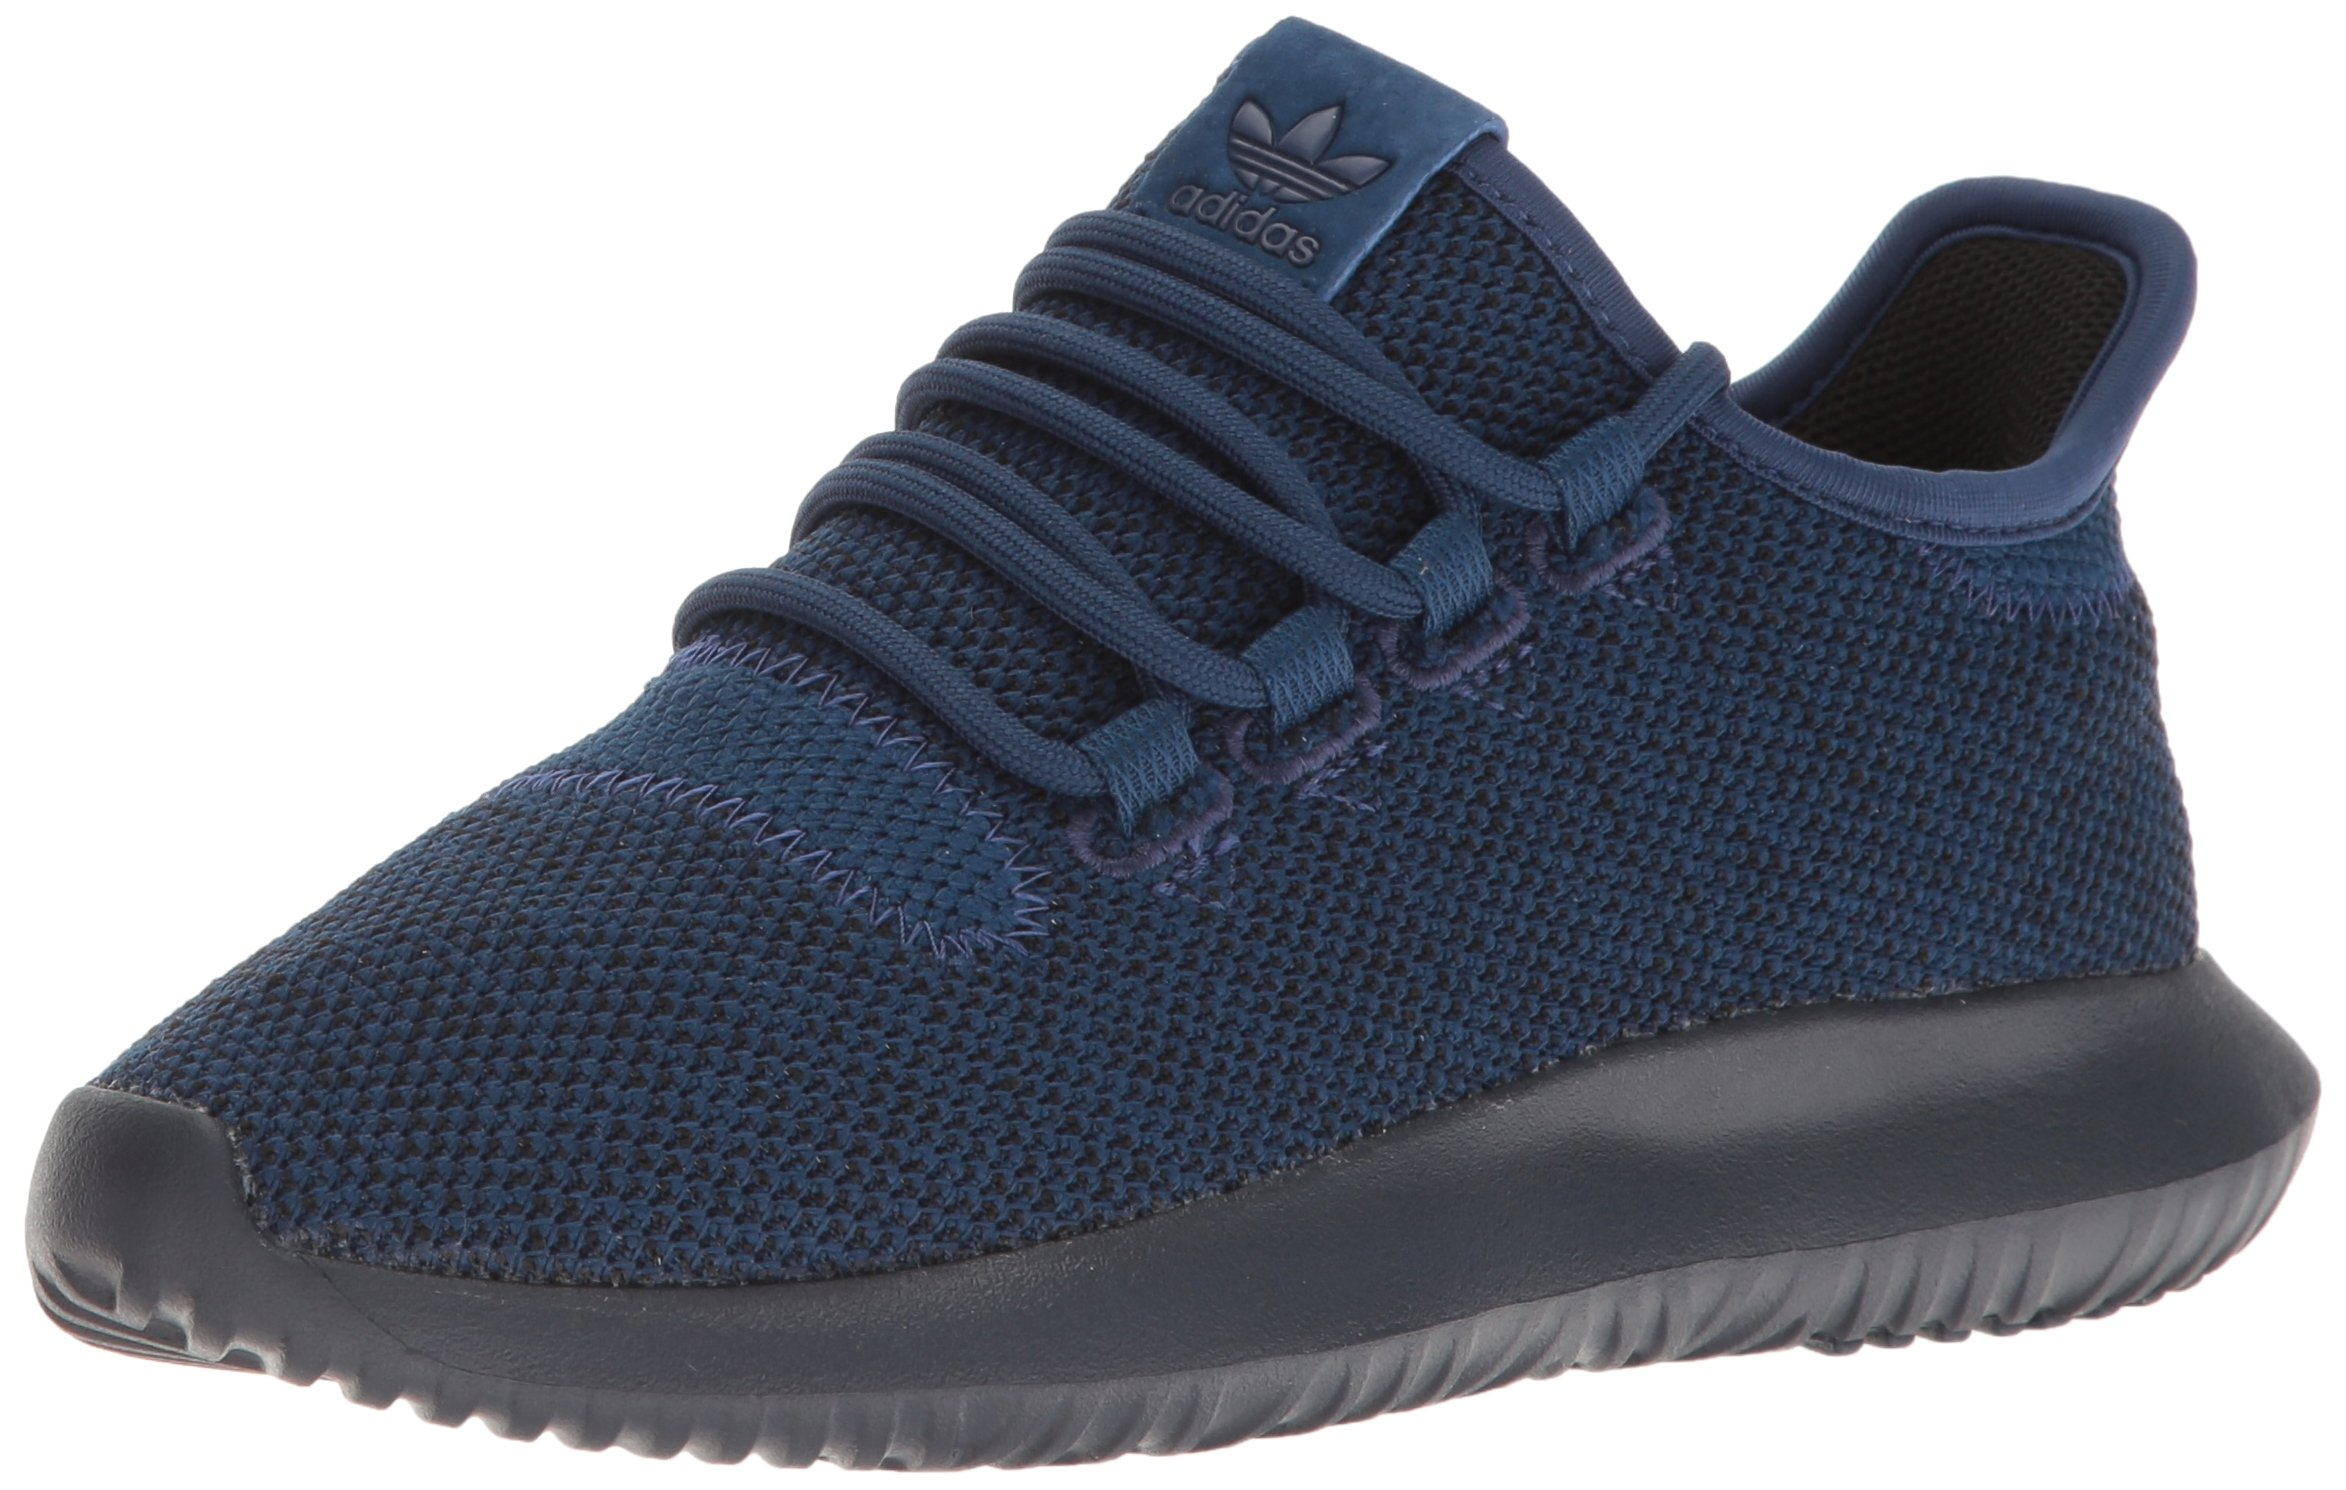 estoy enfermo Día del Niño estómago  Adidas Originals Tubular Shadow J Running Shoe, Mystery Blue  White/Collegiate Navy, 4 M US Big Kid on Galleon Philippines